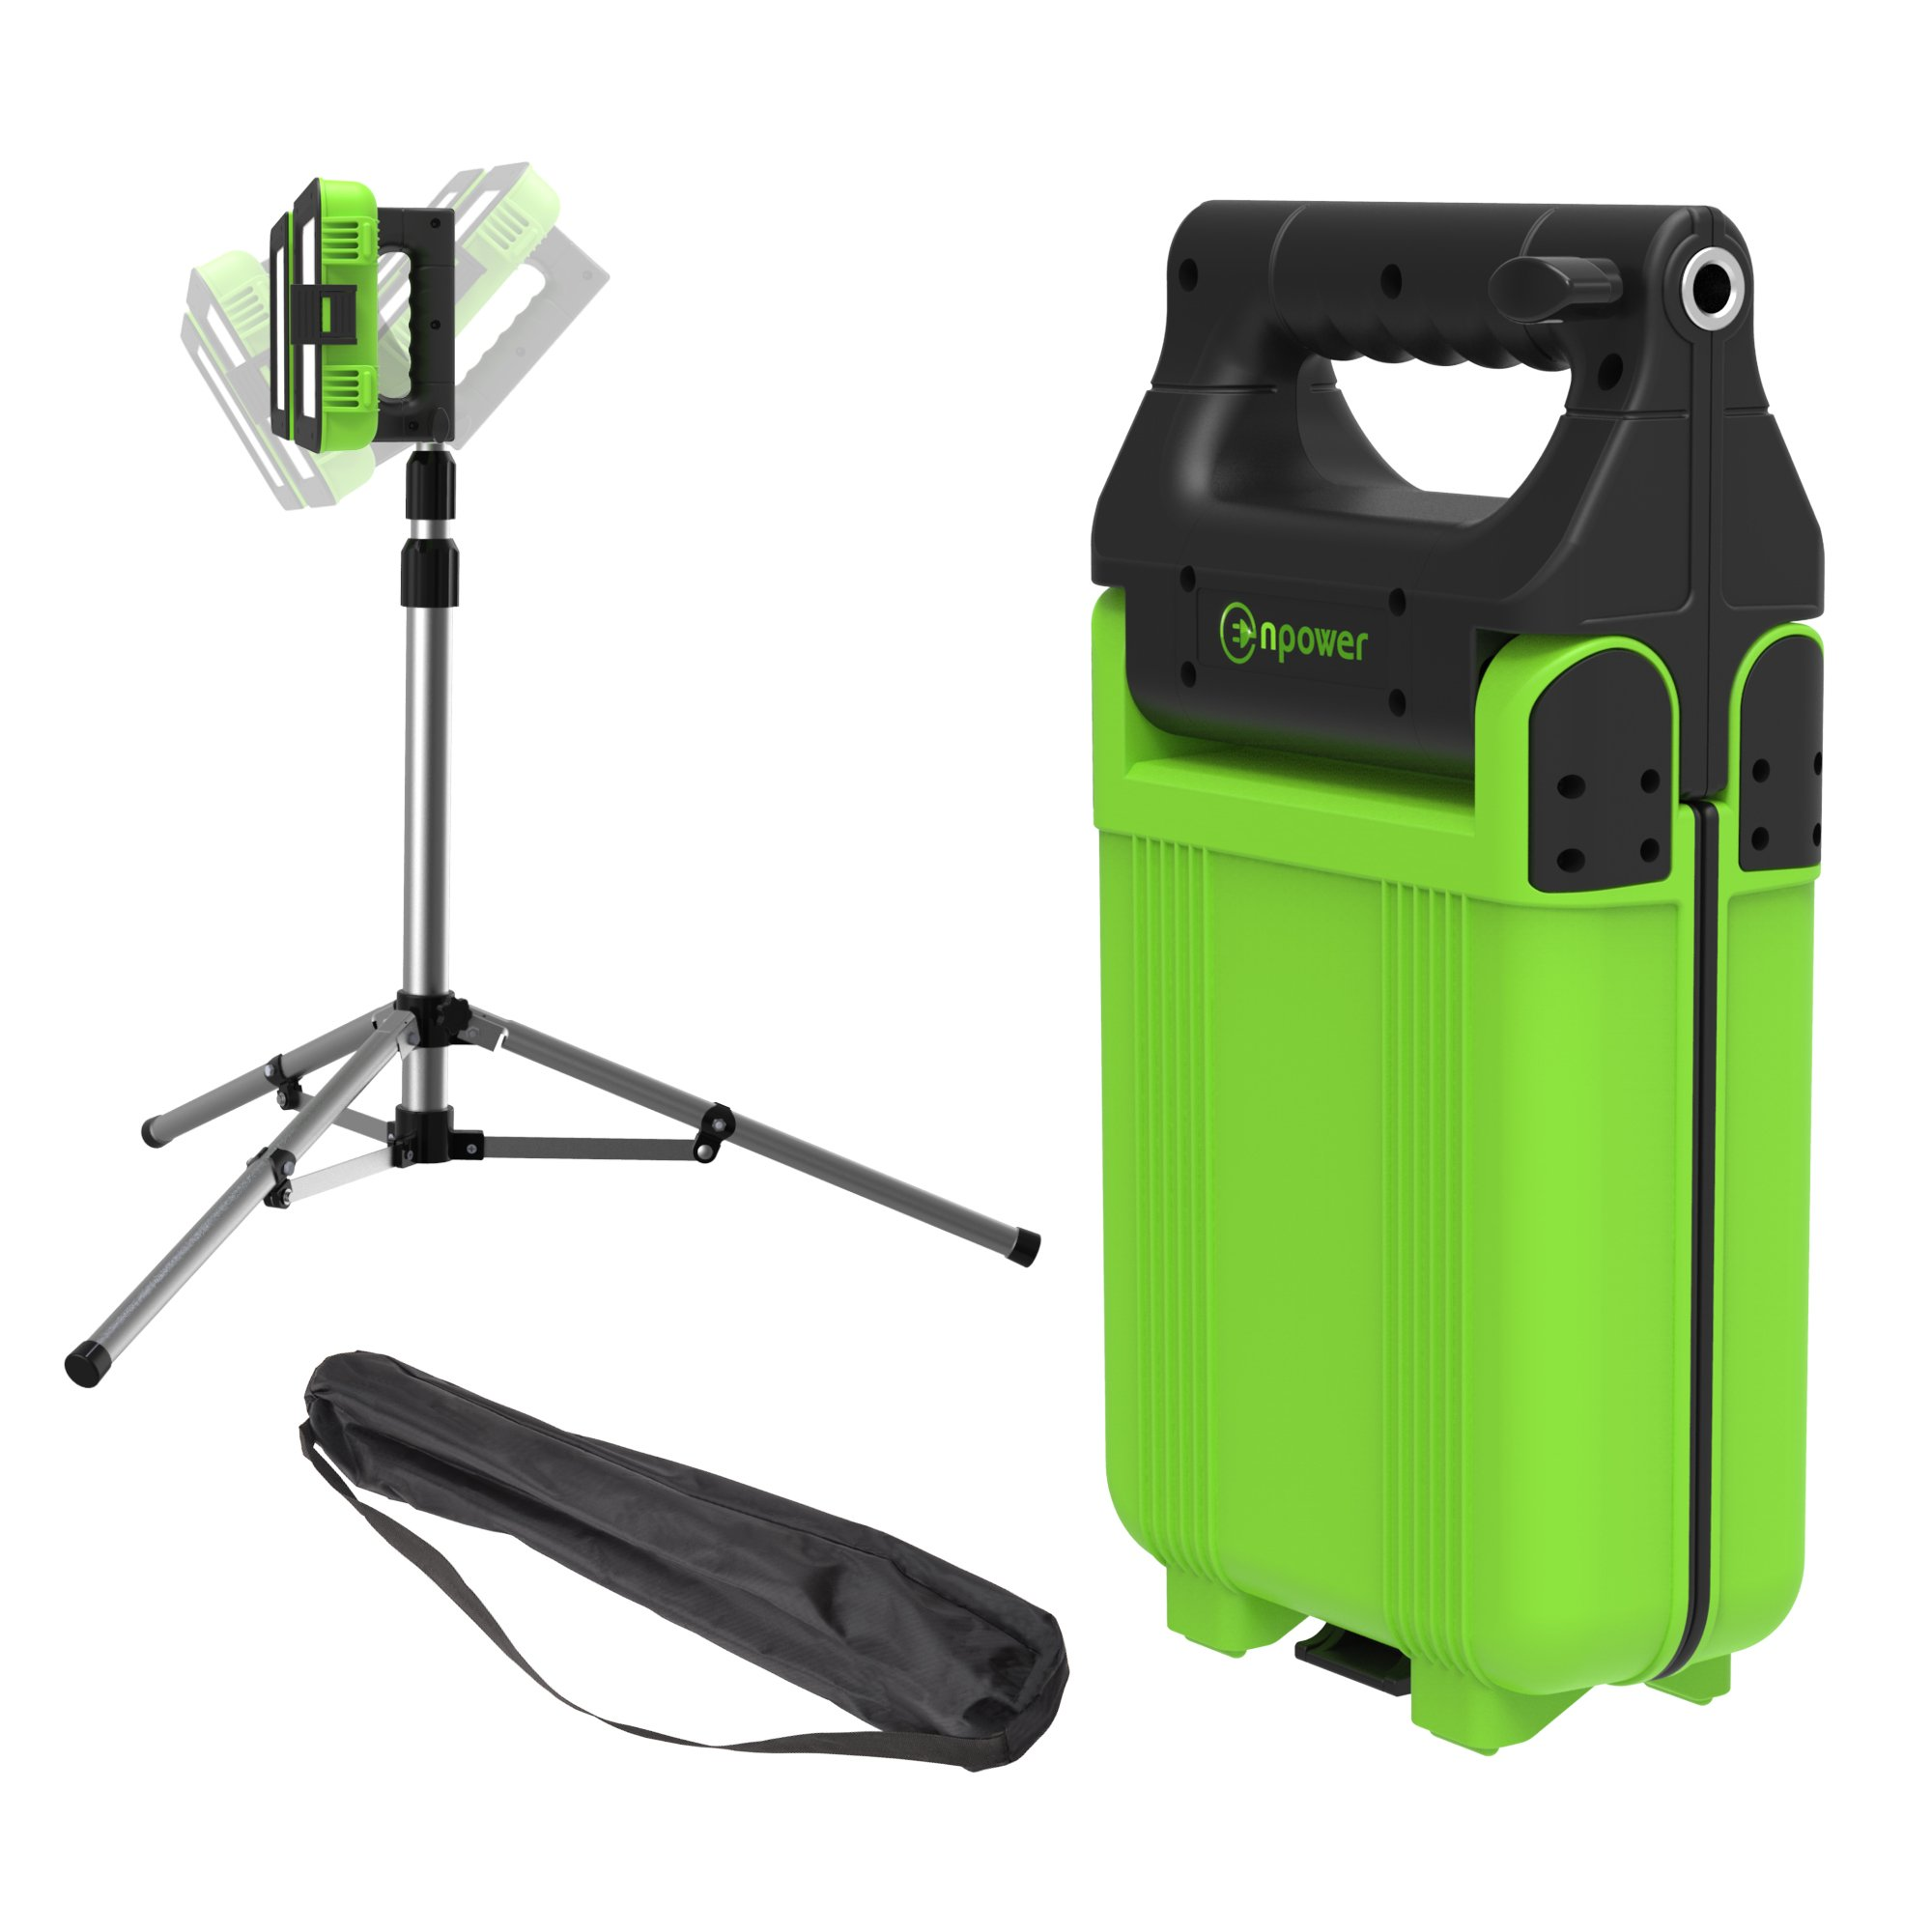 GoGlow LiteBook Bundle - Upgraded 2.0 TRIPOD INCLUDED - 30W Portable Rechargeable Day Light White Light (5000-5500k) Work Light, Camping, Garage or Auto Repair, Emergency (Green)